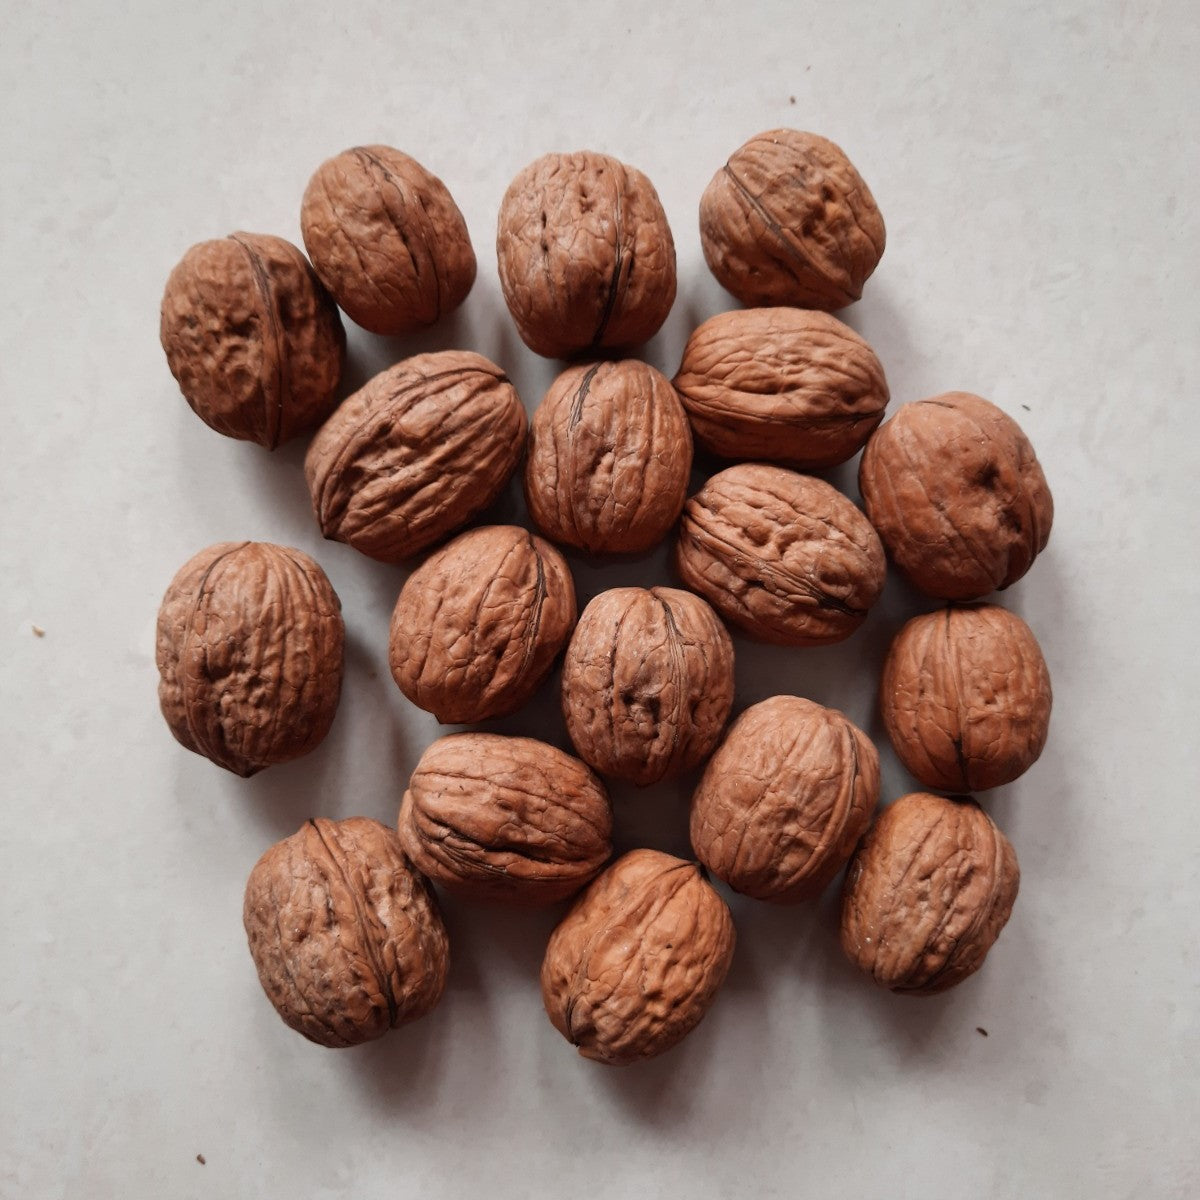 walnuts - Untamed Earth